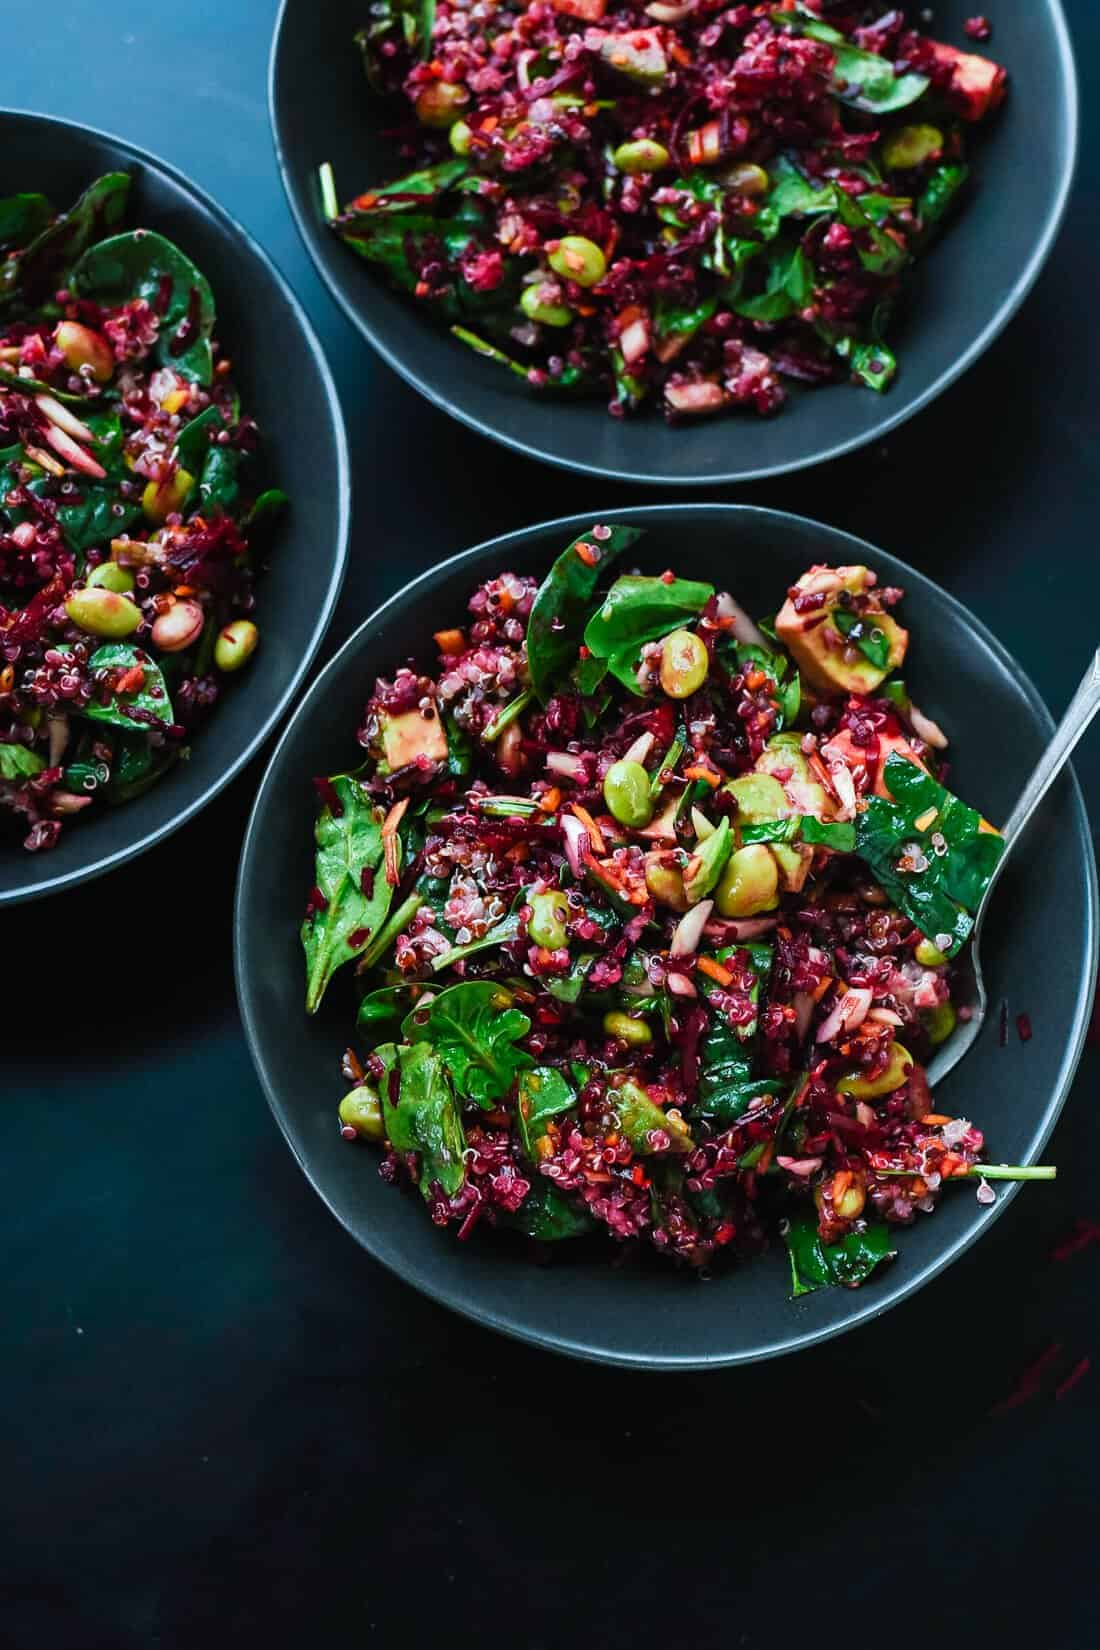 beets with quinoa, carrots and greens in a bowl